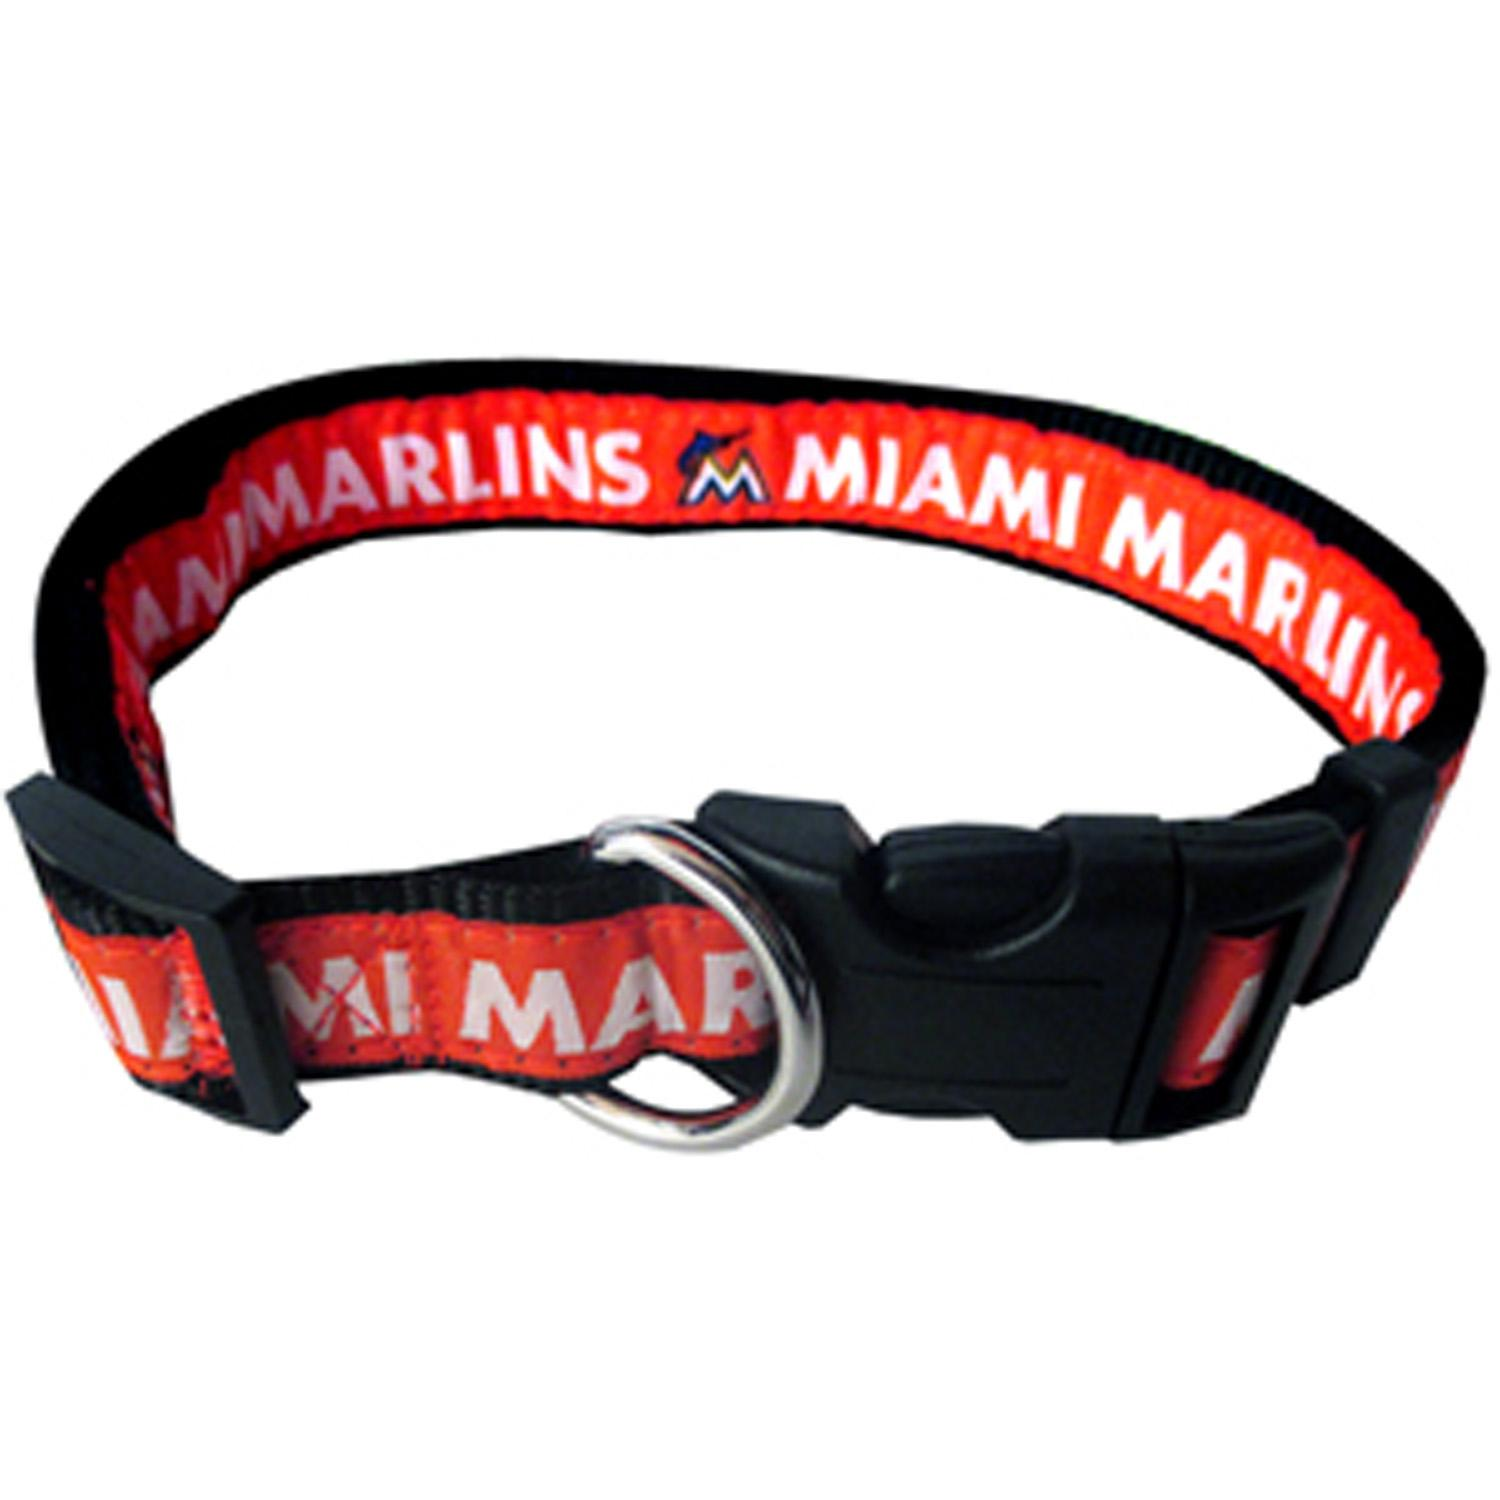 Miami Marlins Officially Licensed Ribbon Dog Collar